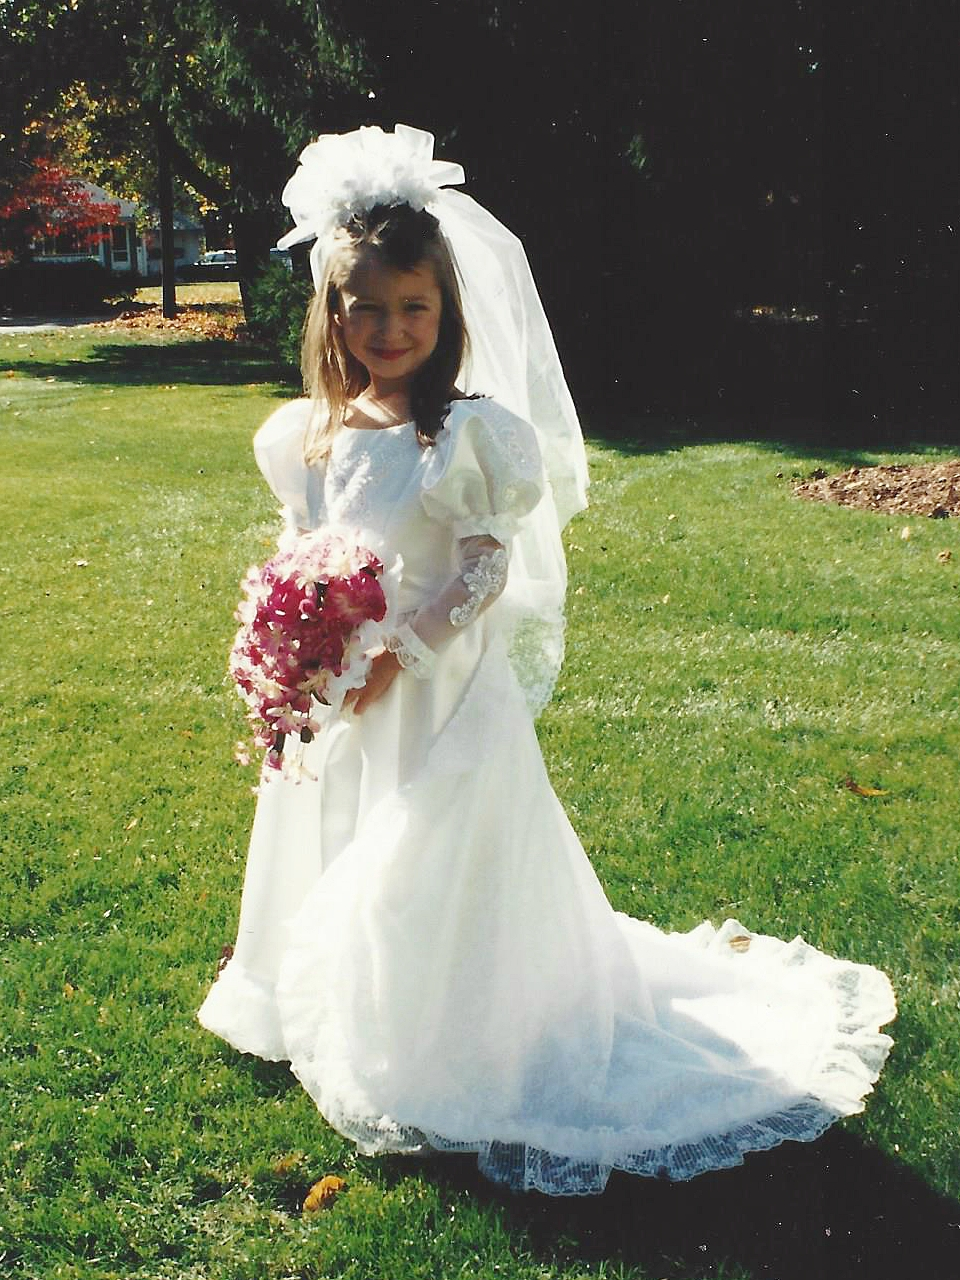 Halloween was always hand-designed in the Hunt house. Brielle, at 5 years old, in her wedding gown costume with a dreamy lace train,puffy satin sleeves, and cascading bouquet....every little girl's dream!